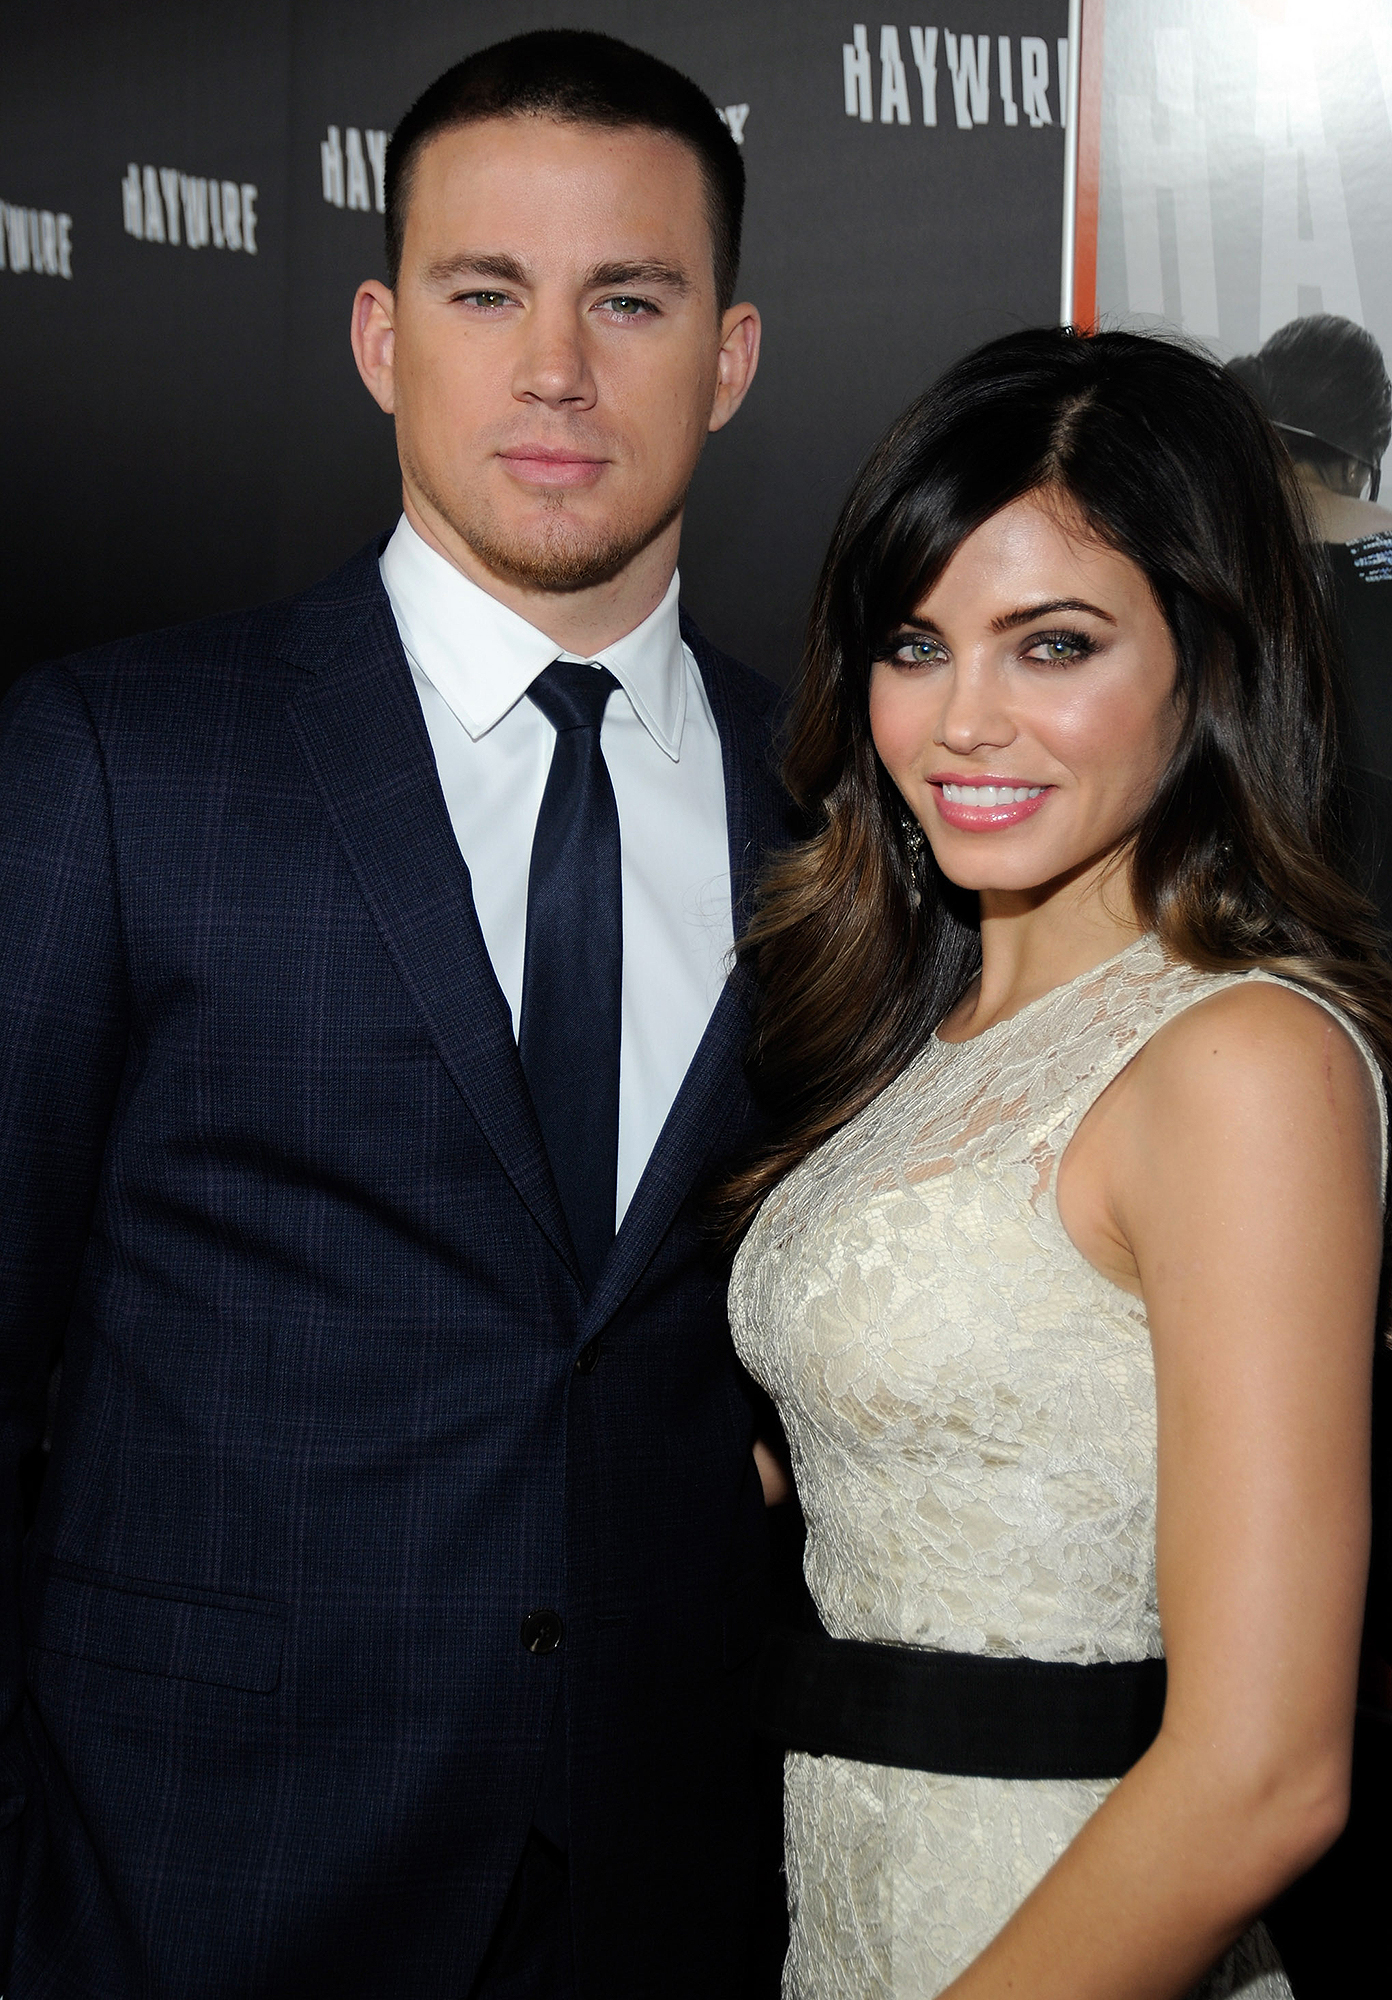 channing-jenna-gallery-10